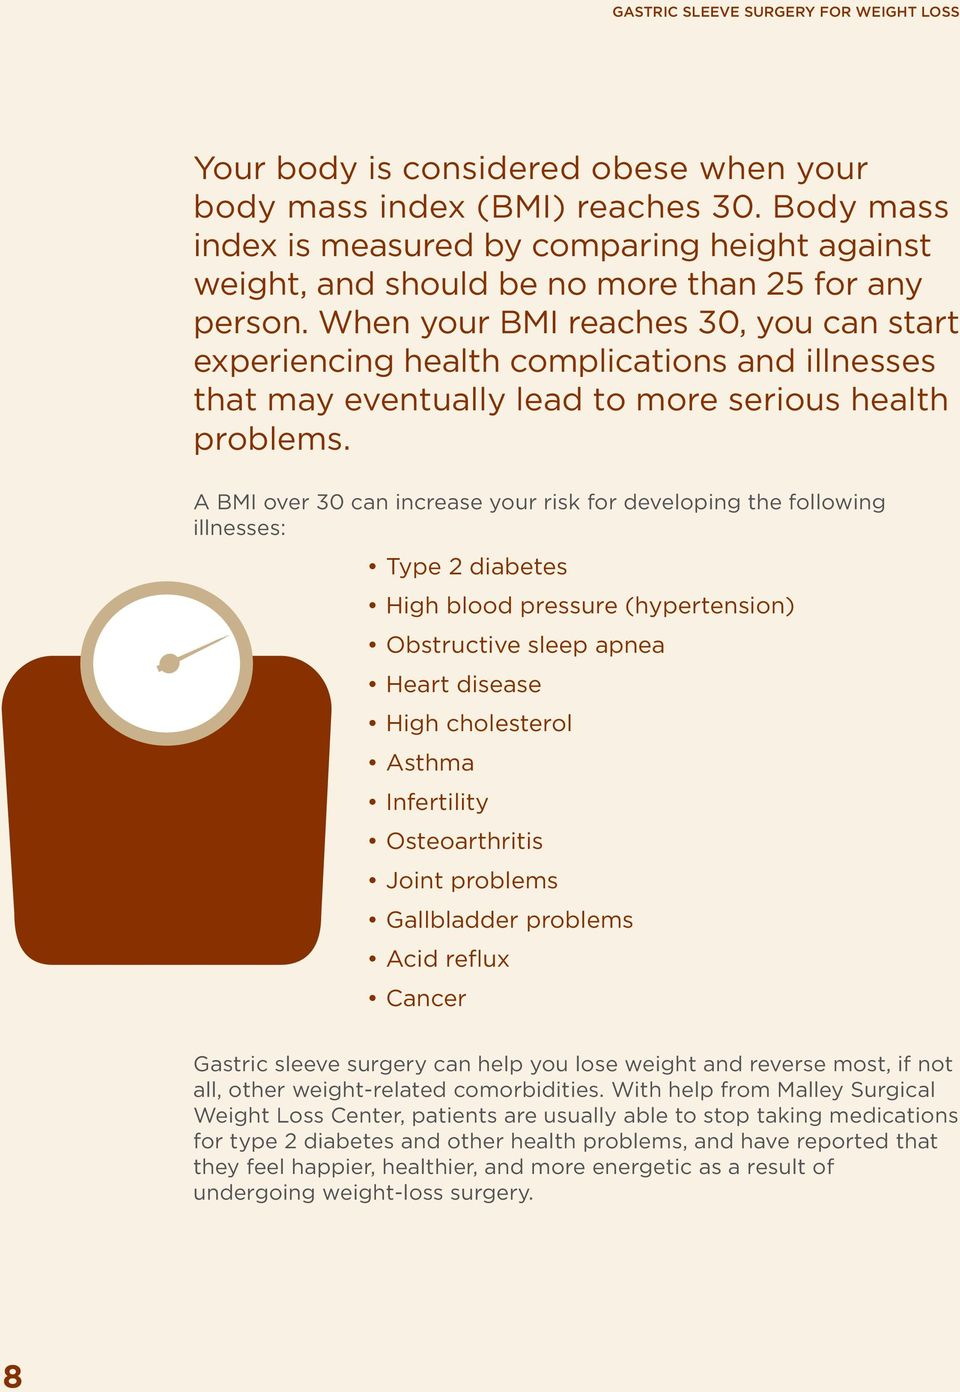 When your BMI reaches 30, you can start experiencing health complications and illnesses that may eventually lead to more serious health problems.